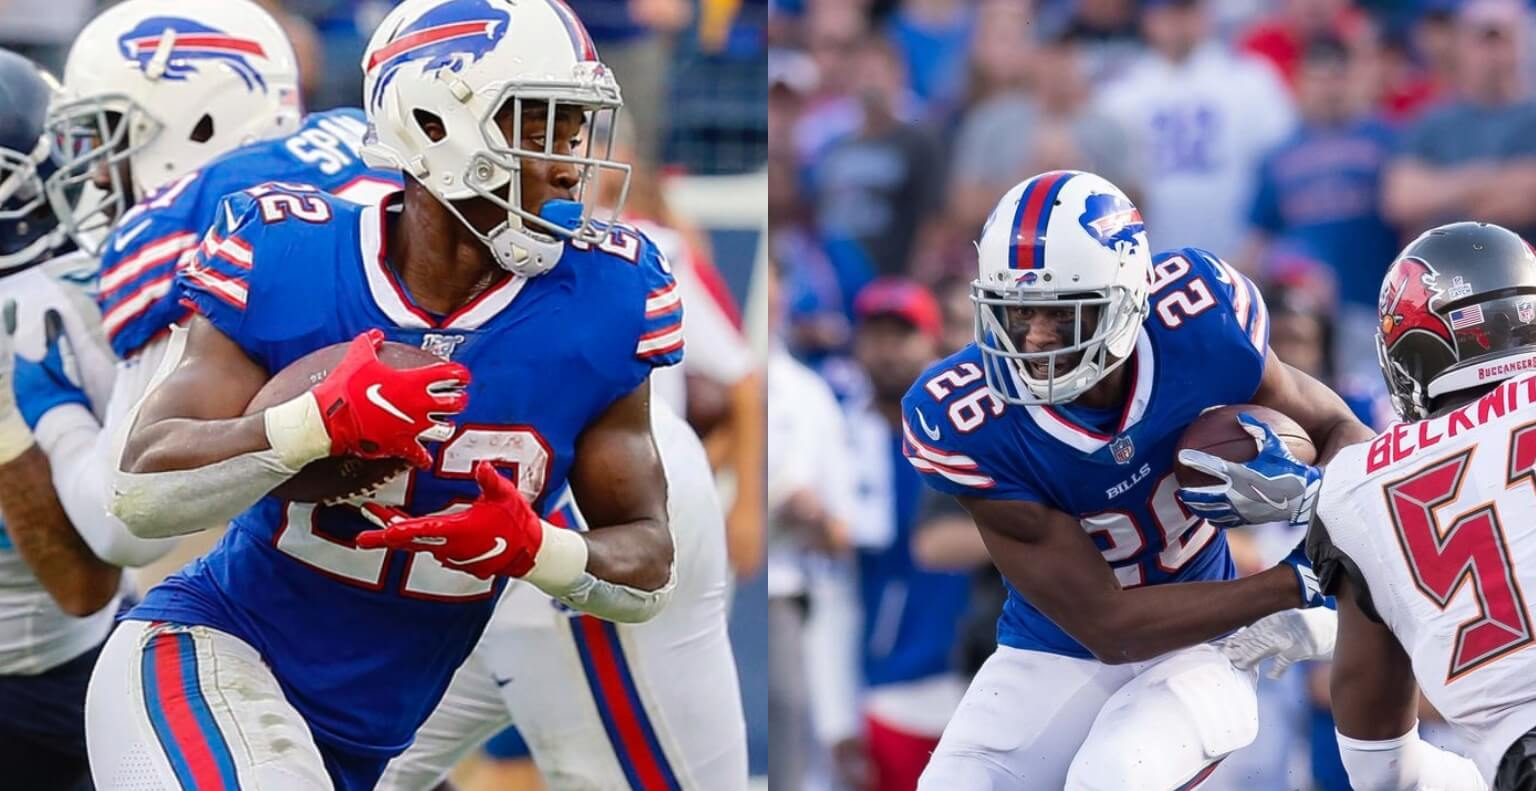 Images via Frederick Breedon/Getty Images and Buffalo Rumblings